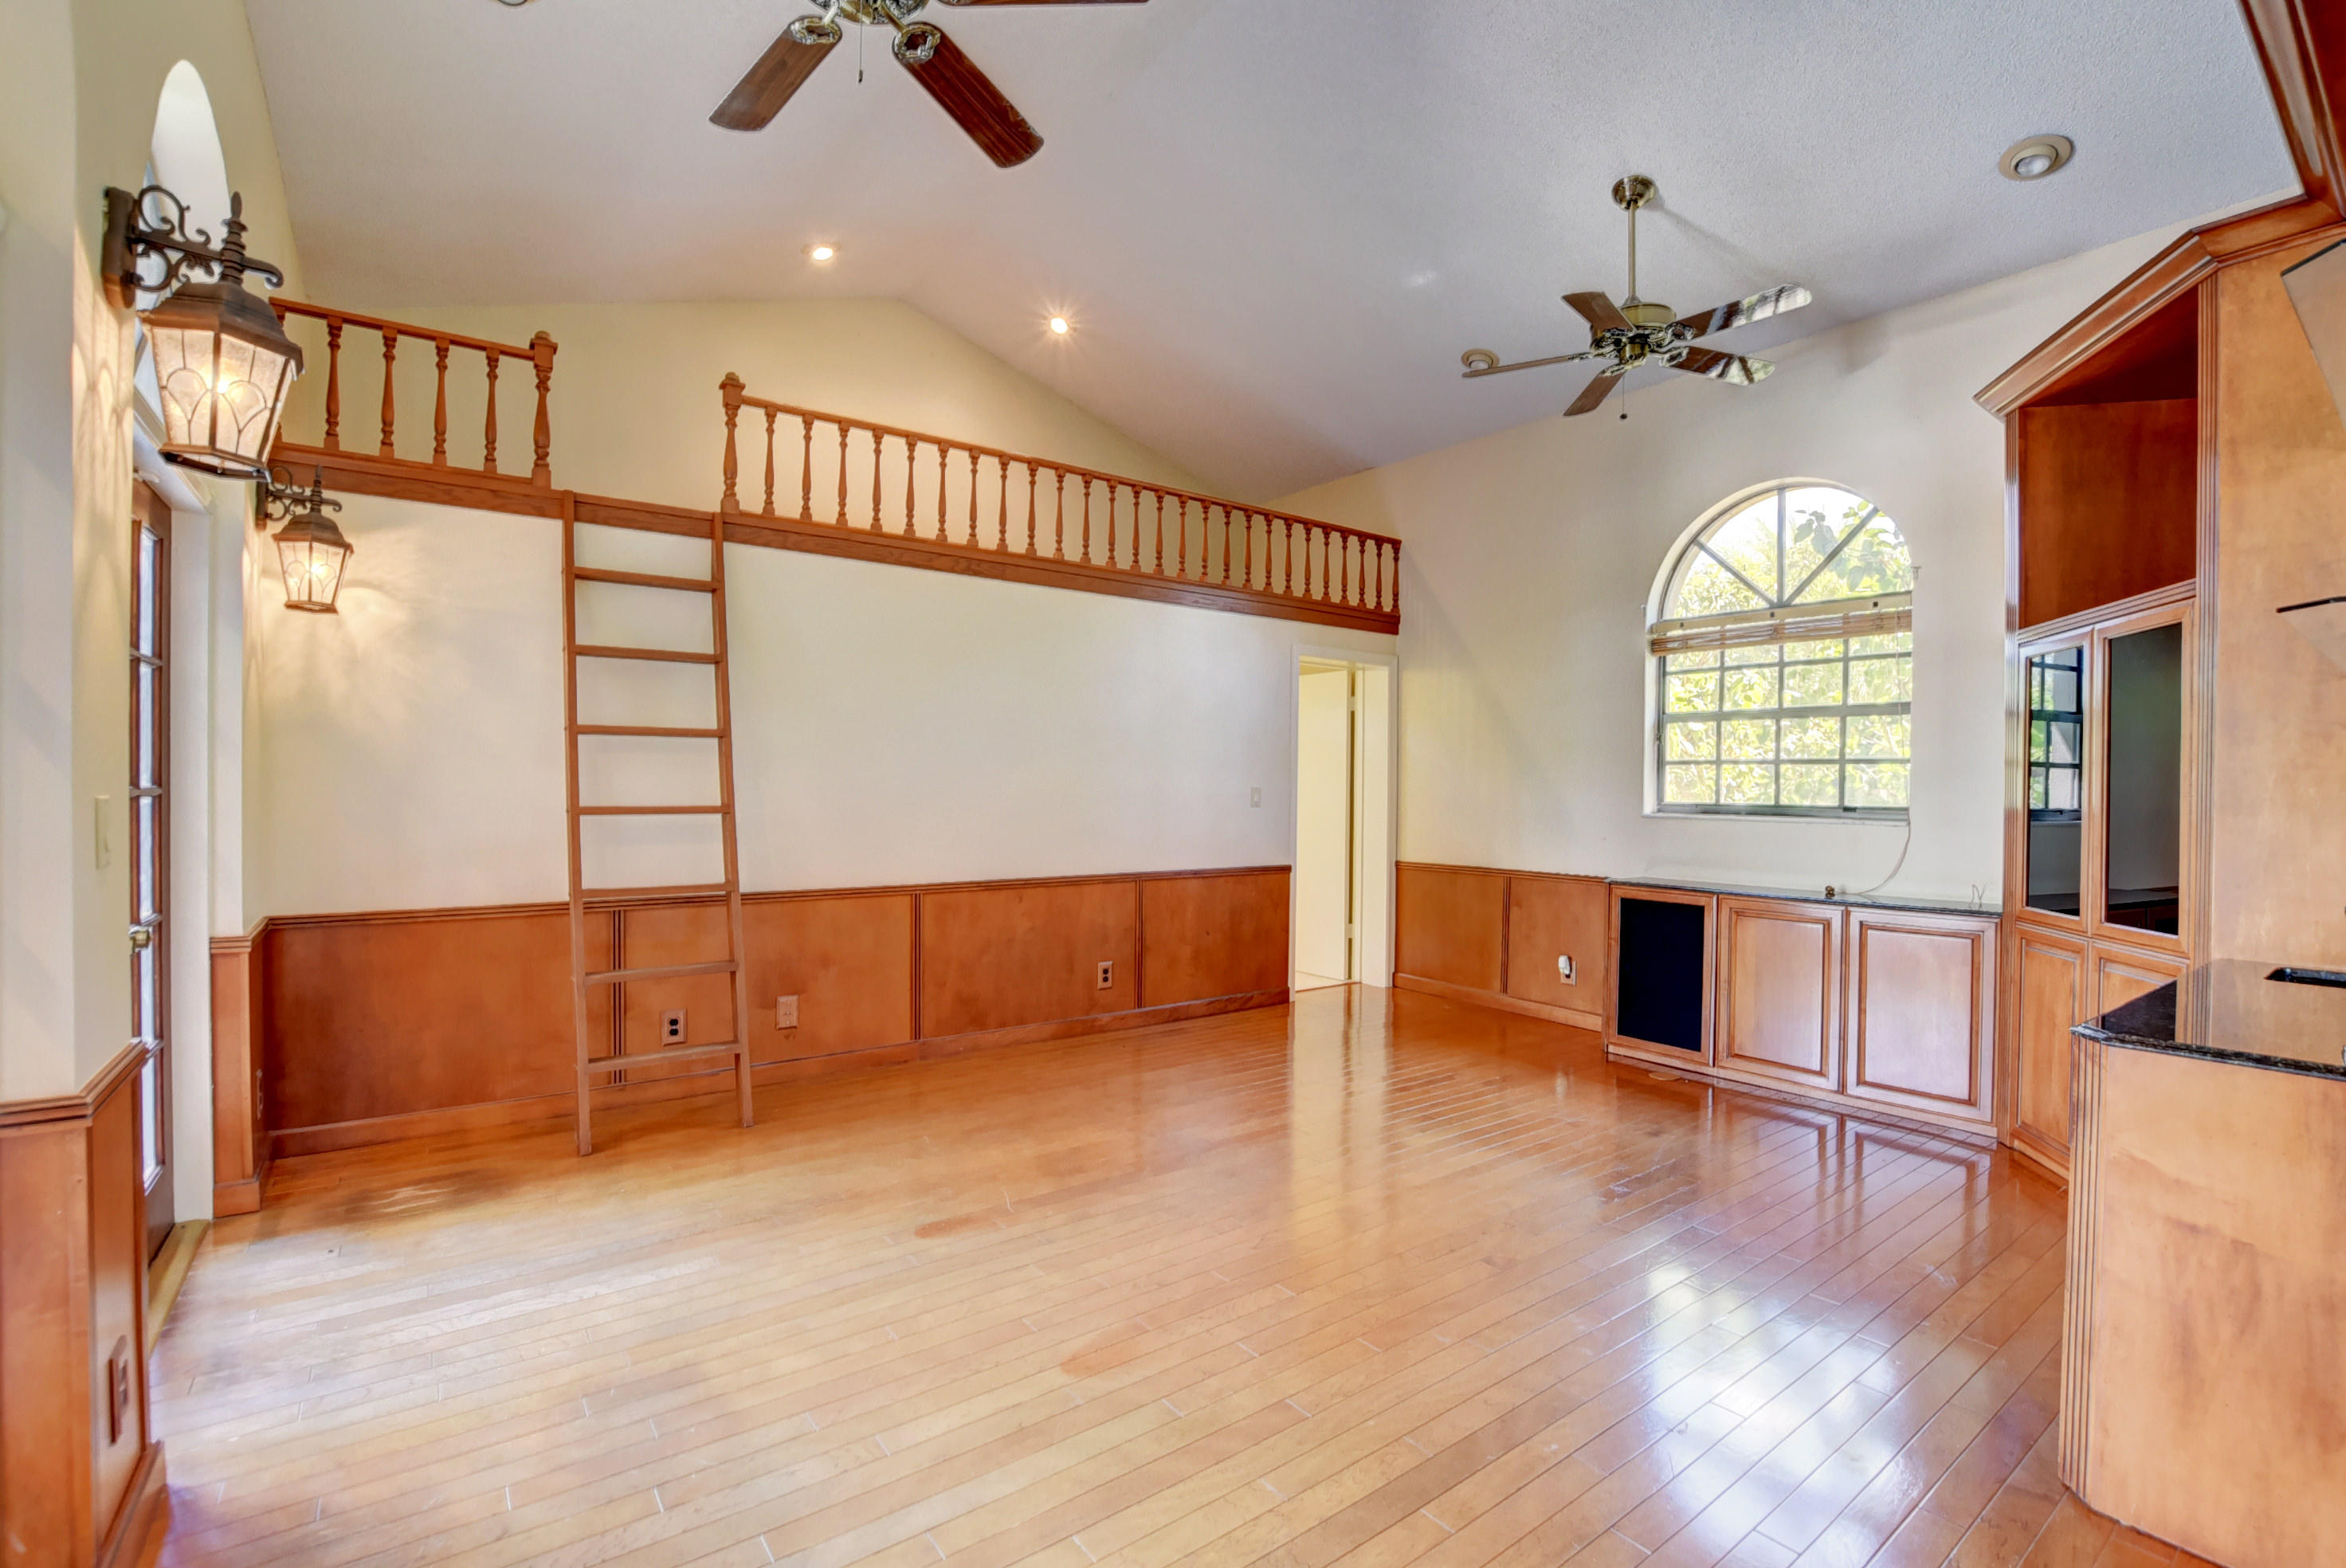 Game Room with Loft